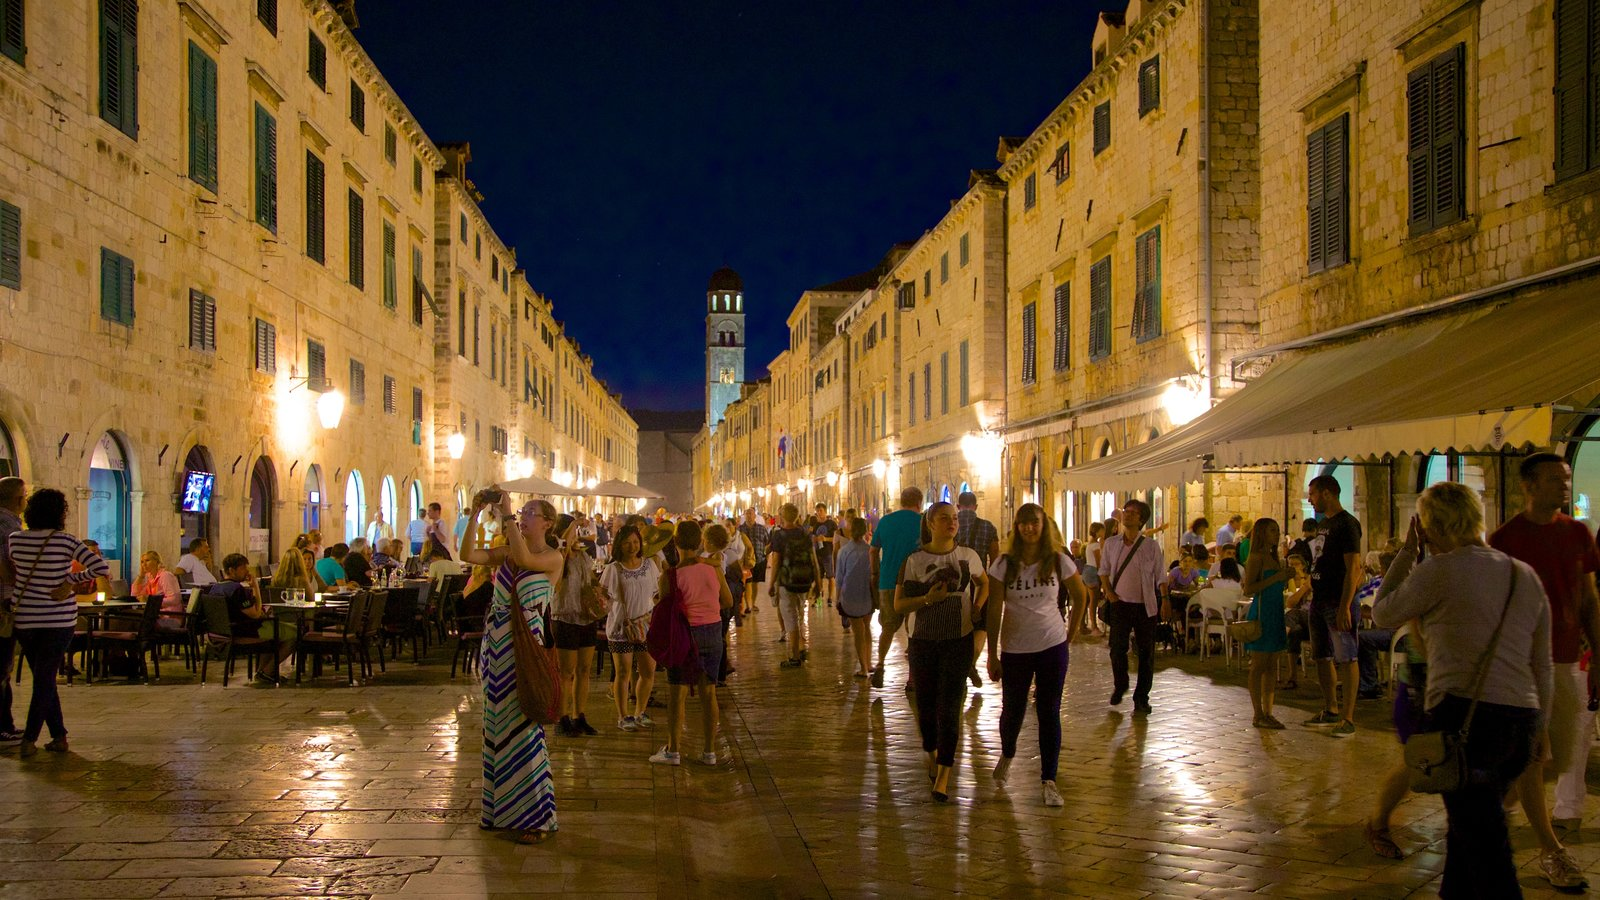 Stradun which includes heritage architecture and night scenes as well as a large group of people